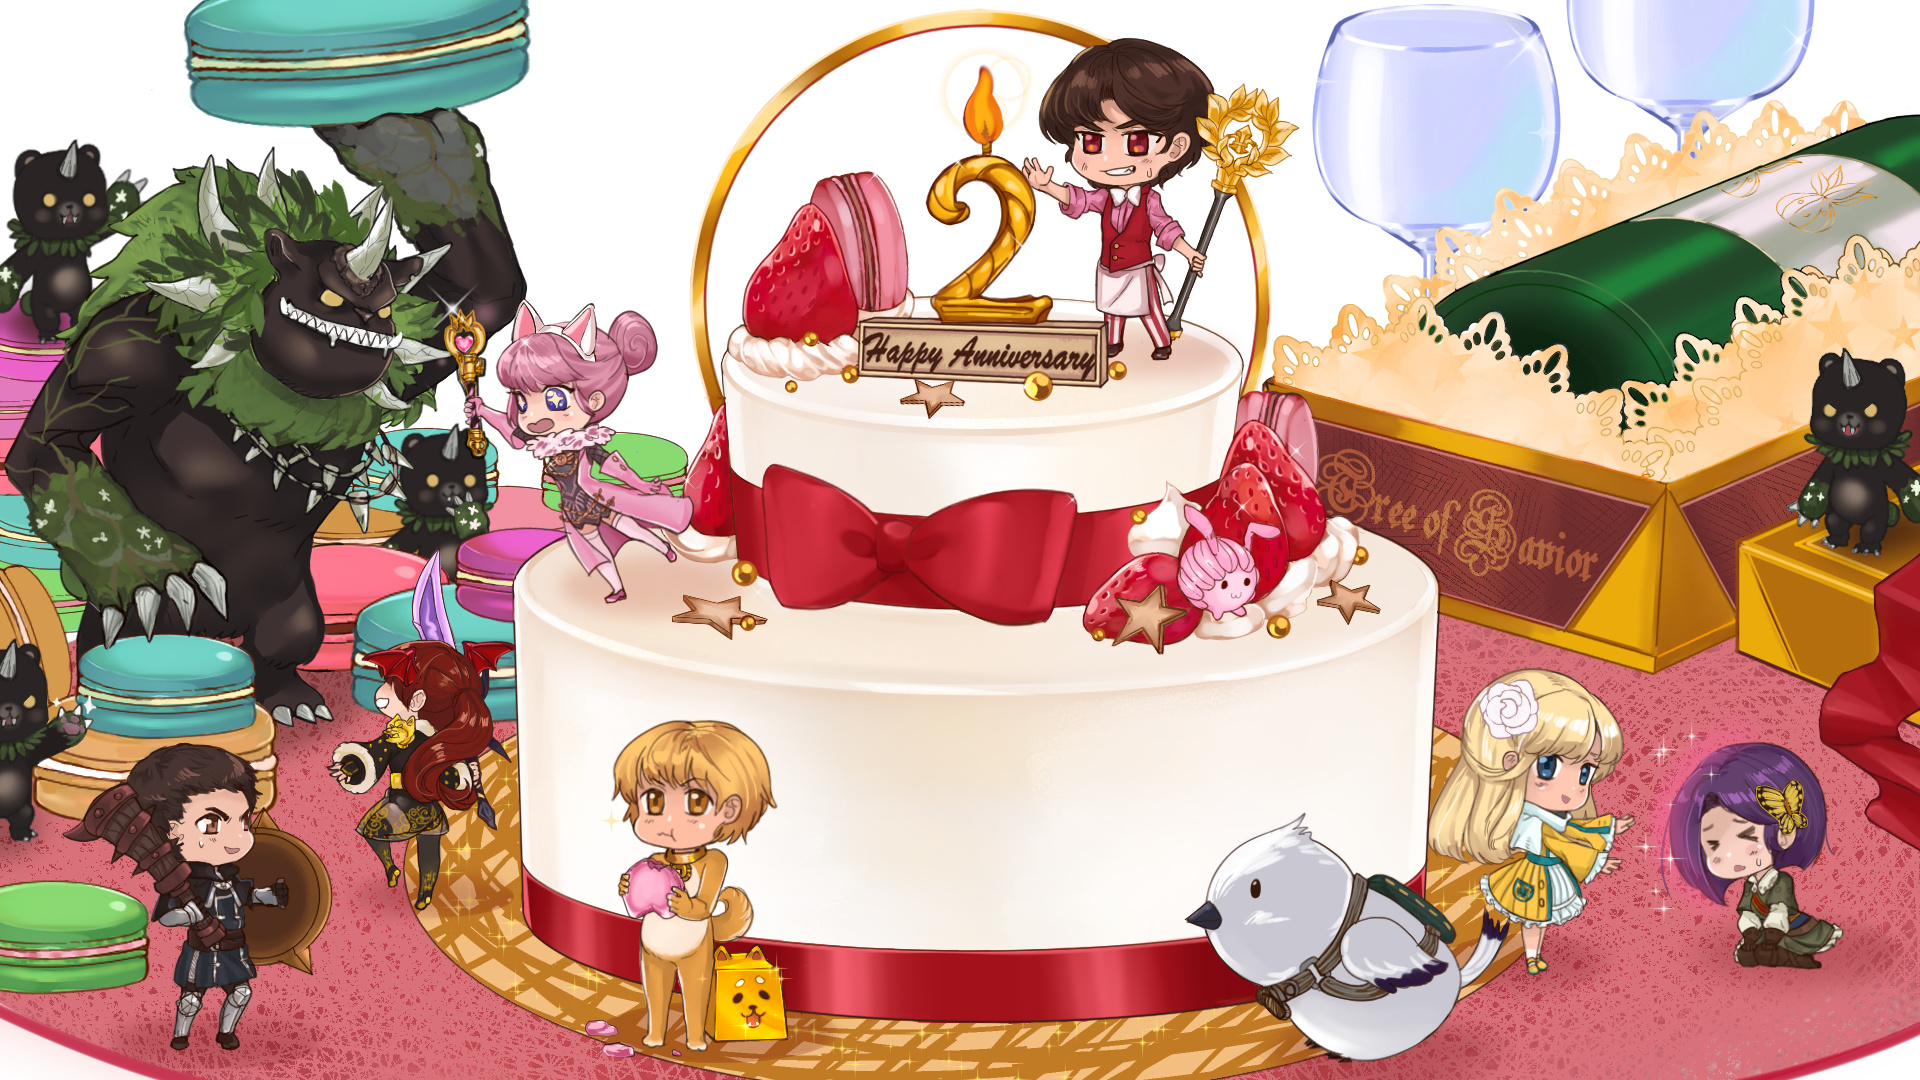 Submitsweet 2nd Anniversary Cake Fan Art Tree Of Savior Forum